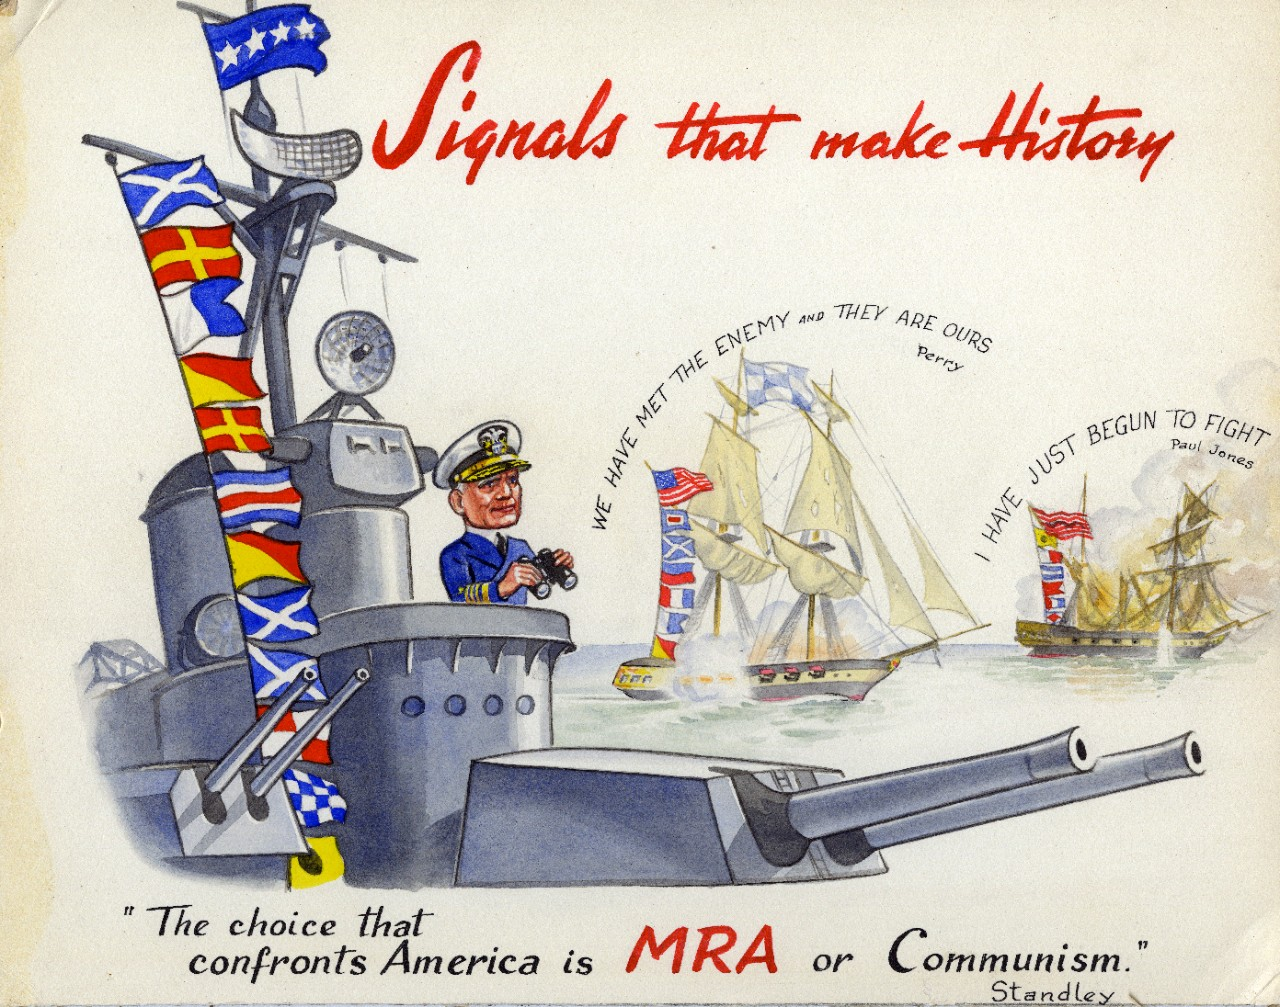 "Artwork featuring a quotation from retired Admiral William H. Standley in support of the Moral Re-Armament (MRA) cause opposing Communism during the Cold War. The quote reads ""The choice that confronts America is MRA or Communism."" Also shown are famous naval quotes by Oliver Hazard Perry and John Paul Jones. Artist unknown."